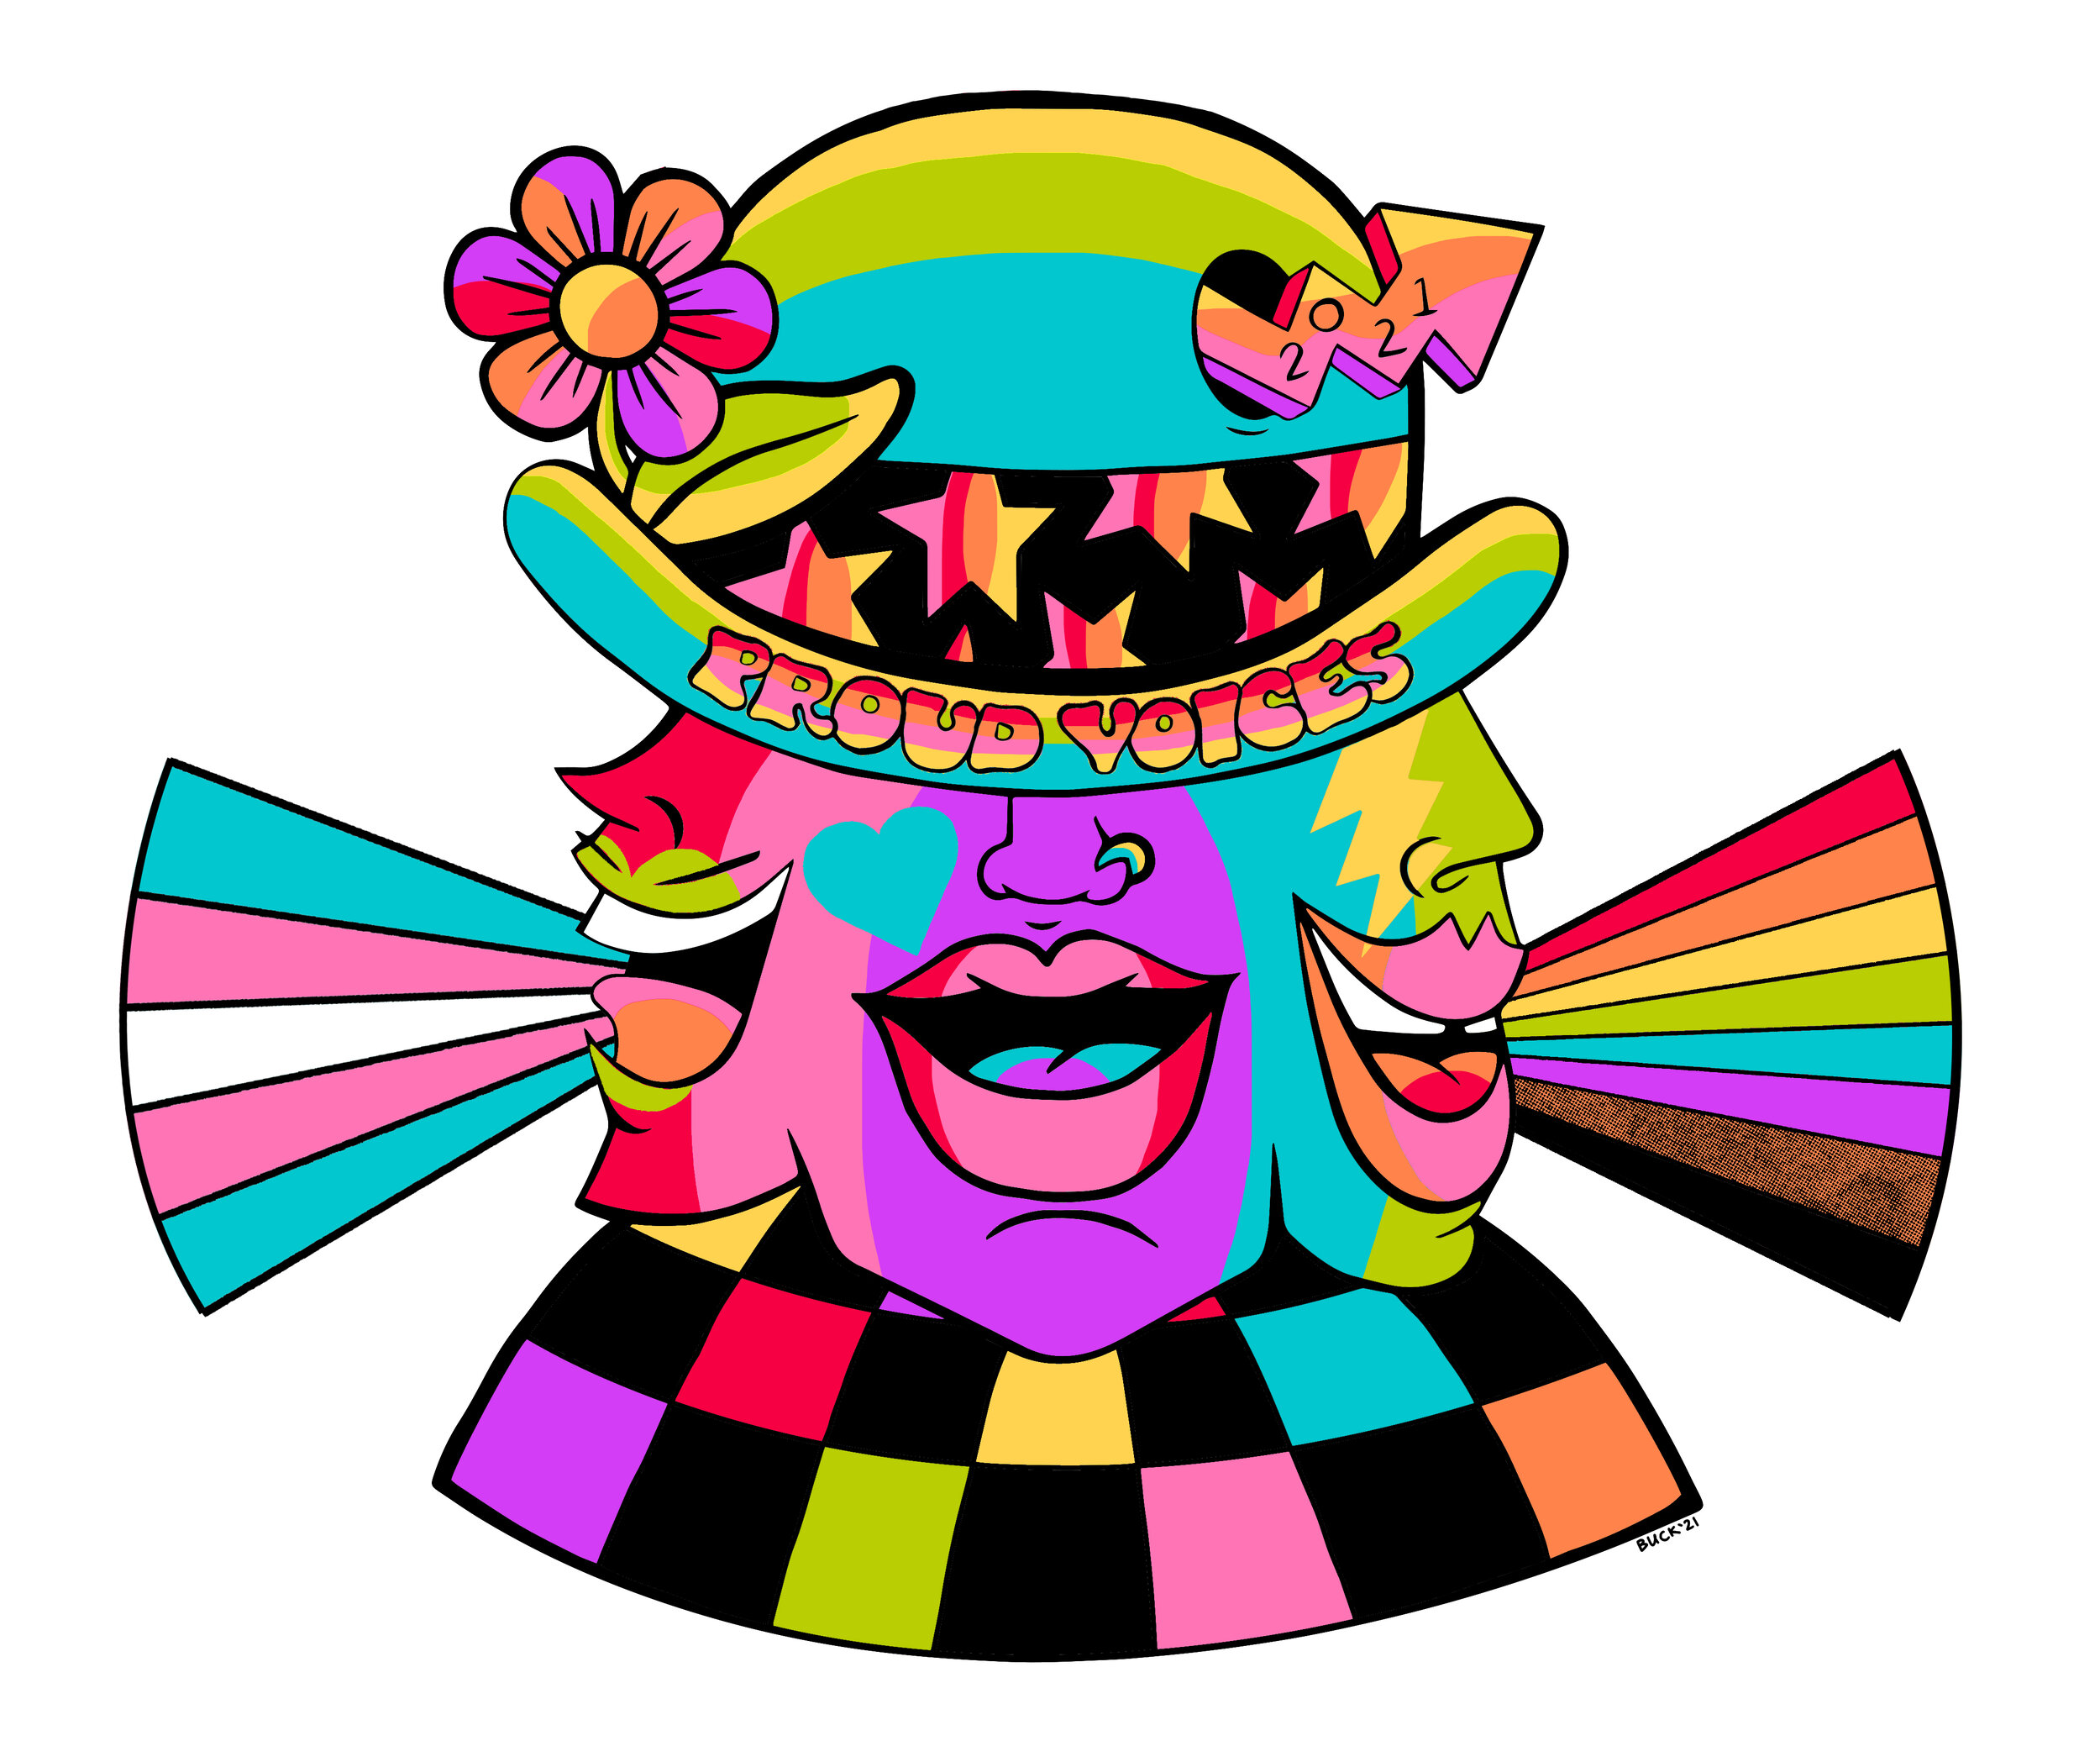 Three-face head with clown hat and rainbow colors.